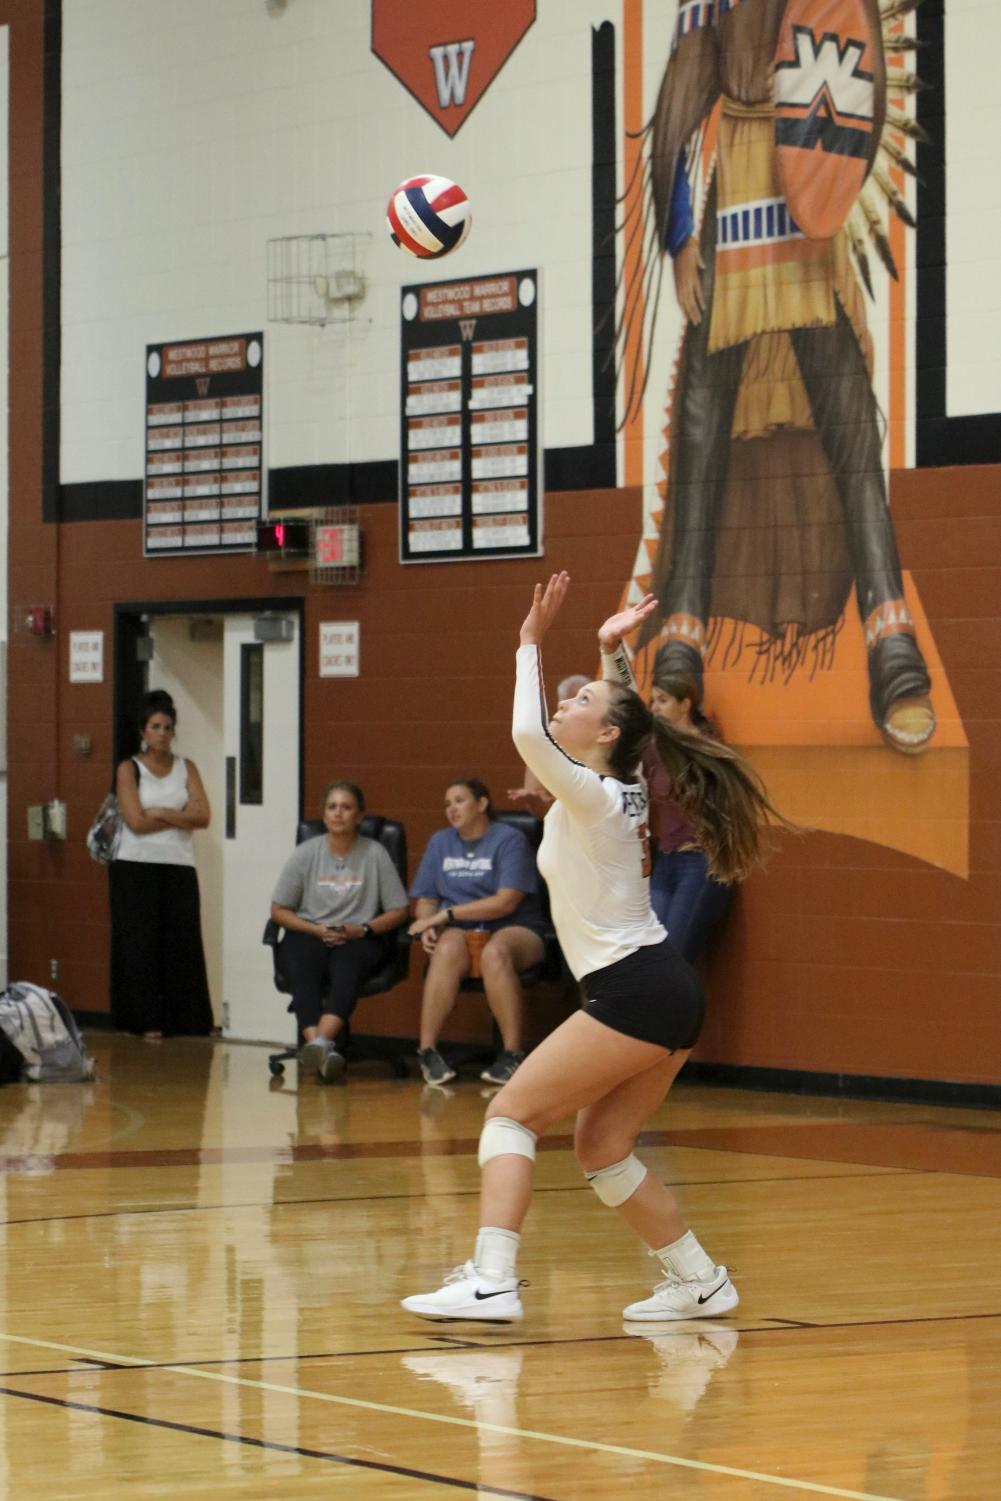 Abby+Gregorczyk+%2721+prepares+to+serve+the+ball+to+Vandegrift.+Gregorczyk+is+an+outside+hitter+for+the+Lady+Warriors.